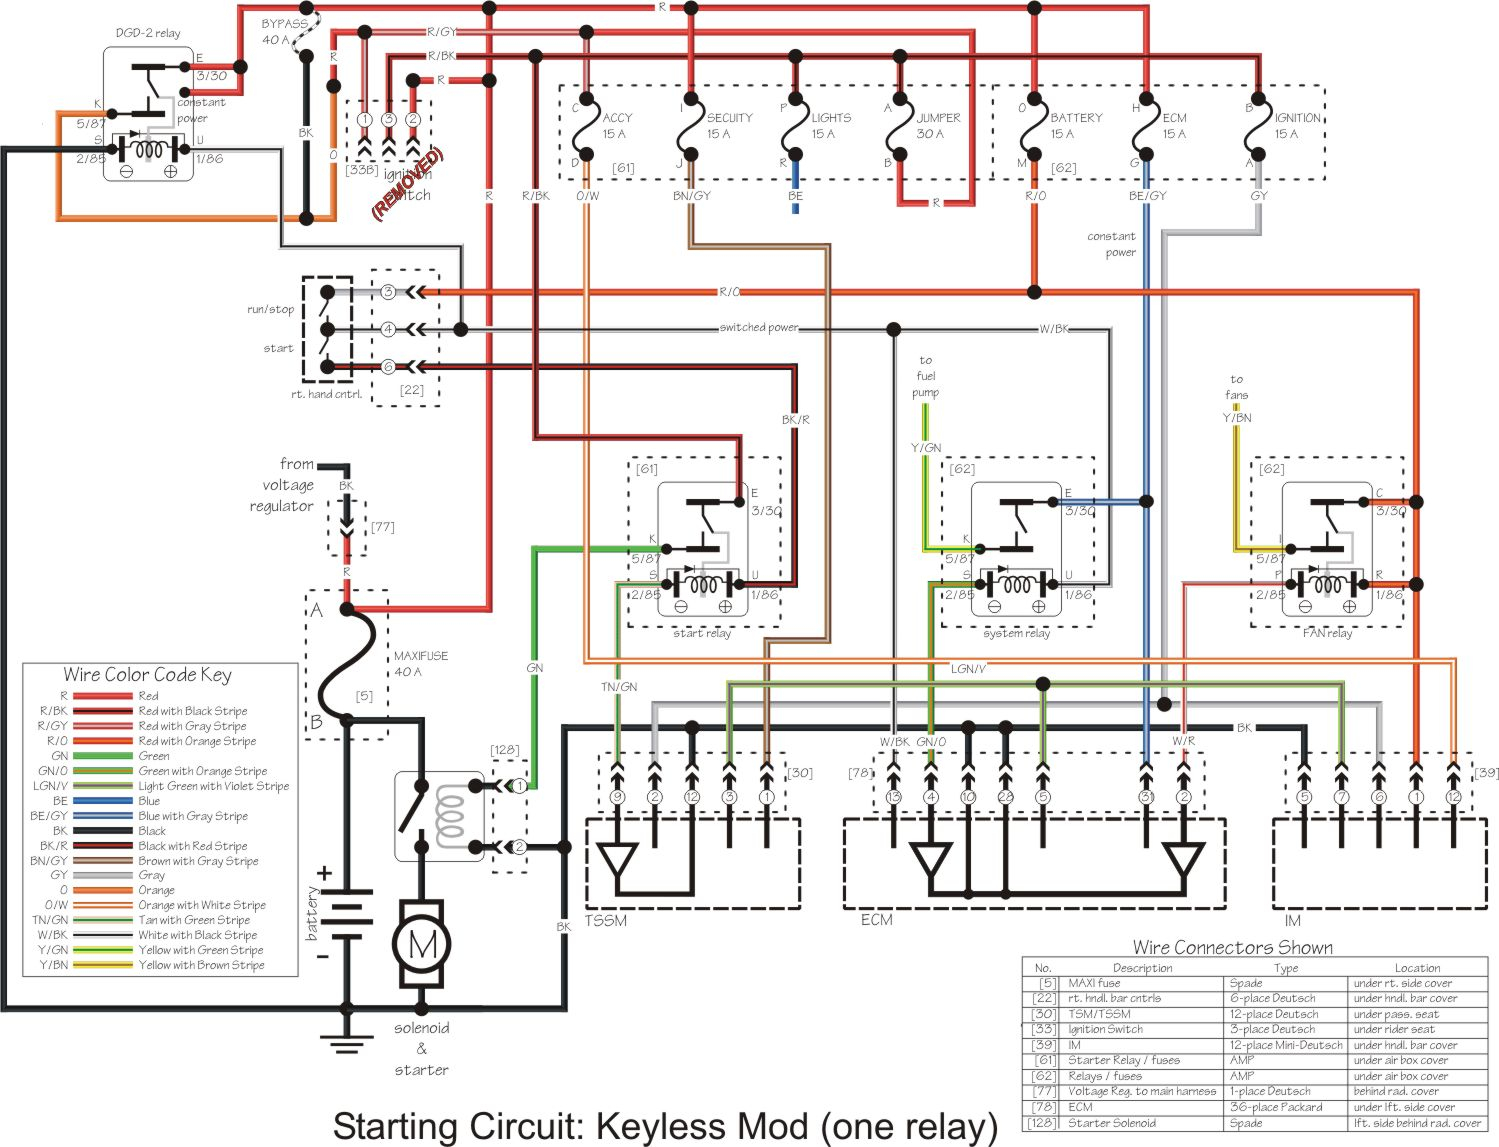 hight resolution of harley fuel gauge wiring diagram sample harley davidson tail light wiring diagram harley davidson fuel gauge wiring diagram